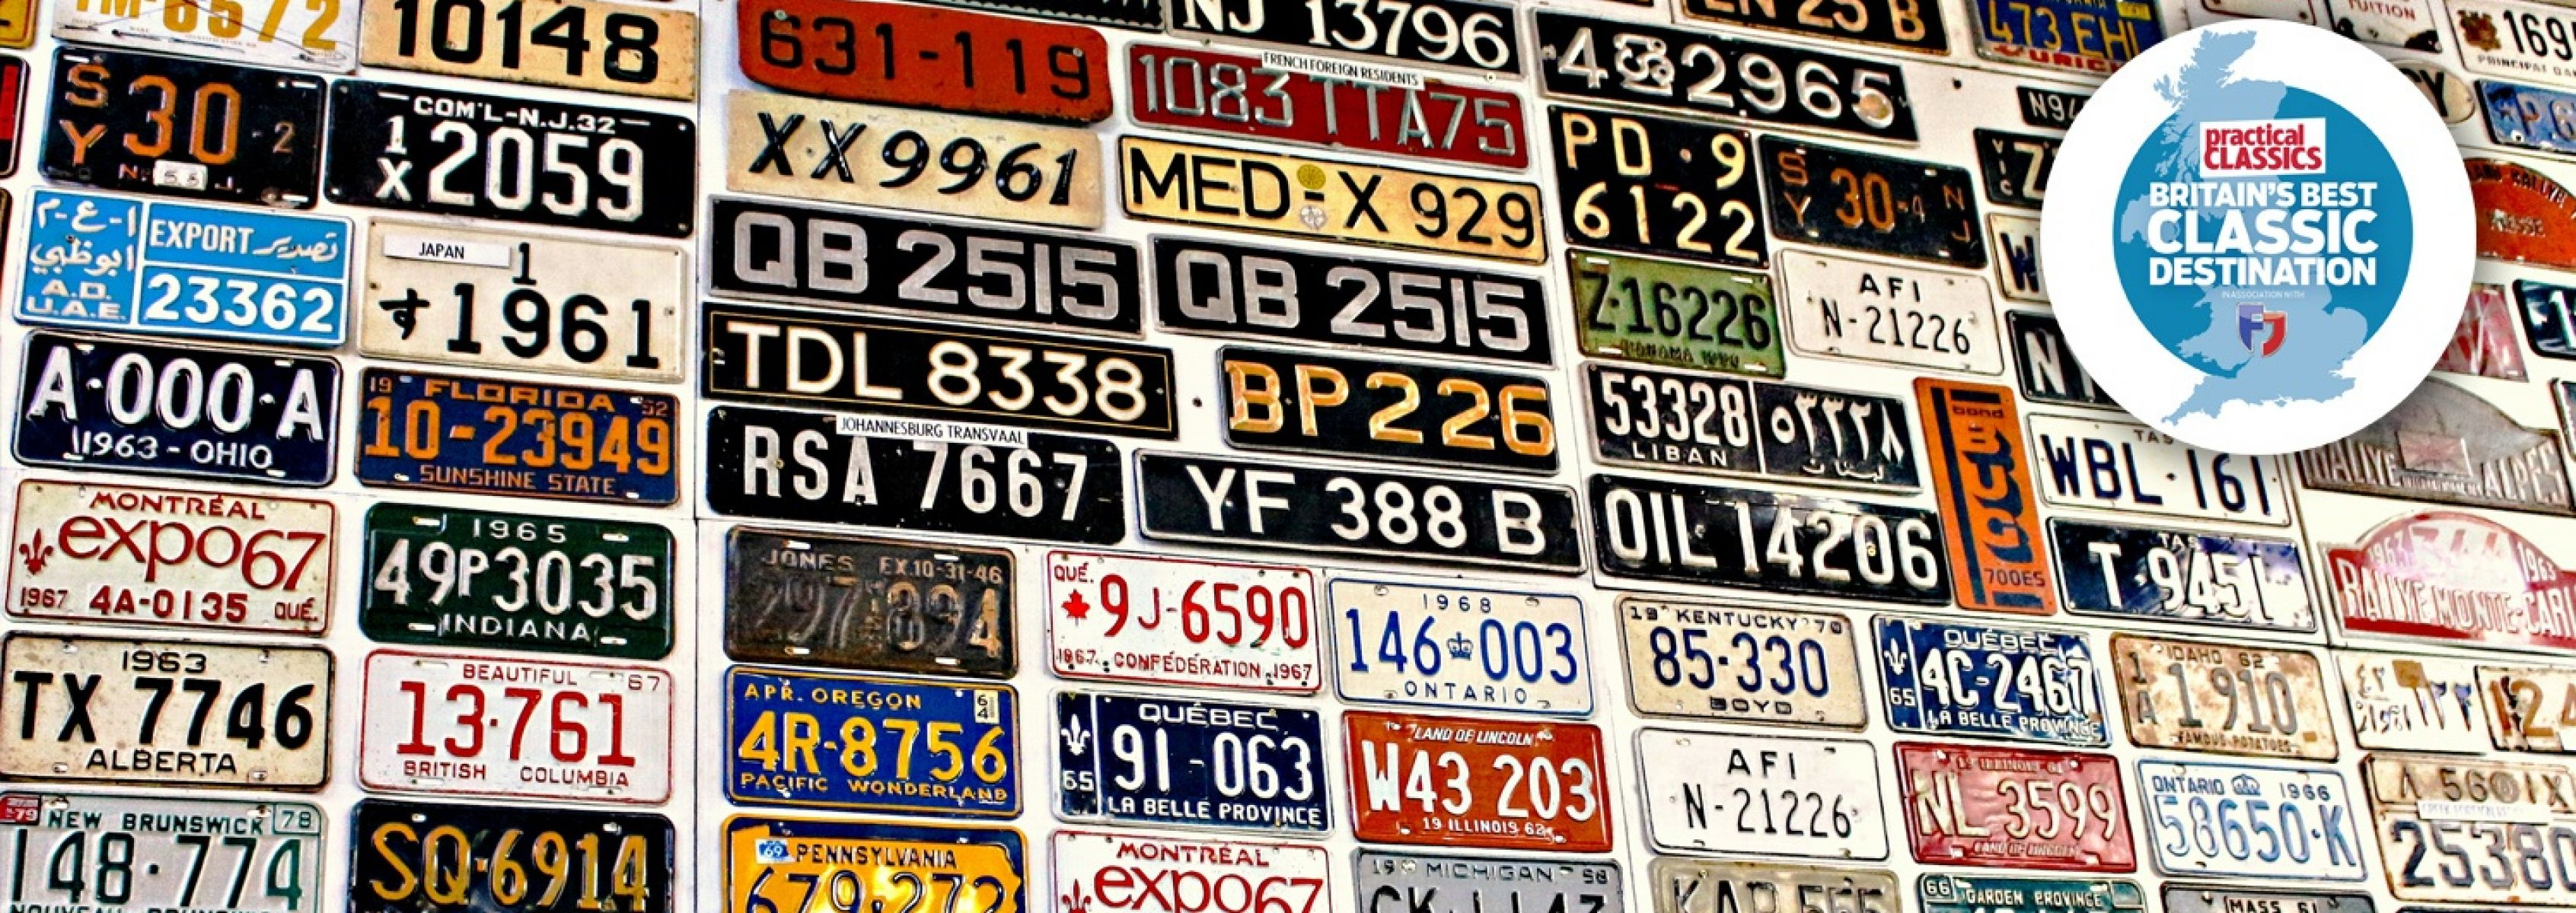 <p>We've got probably the largest collection of motoring of memorabilia in the UK.</p>